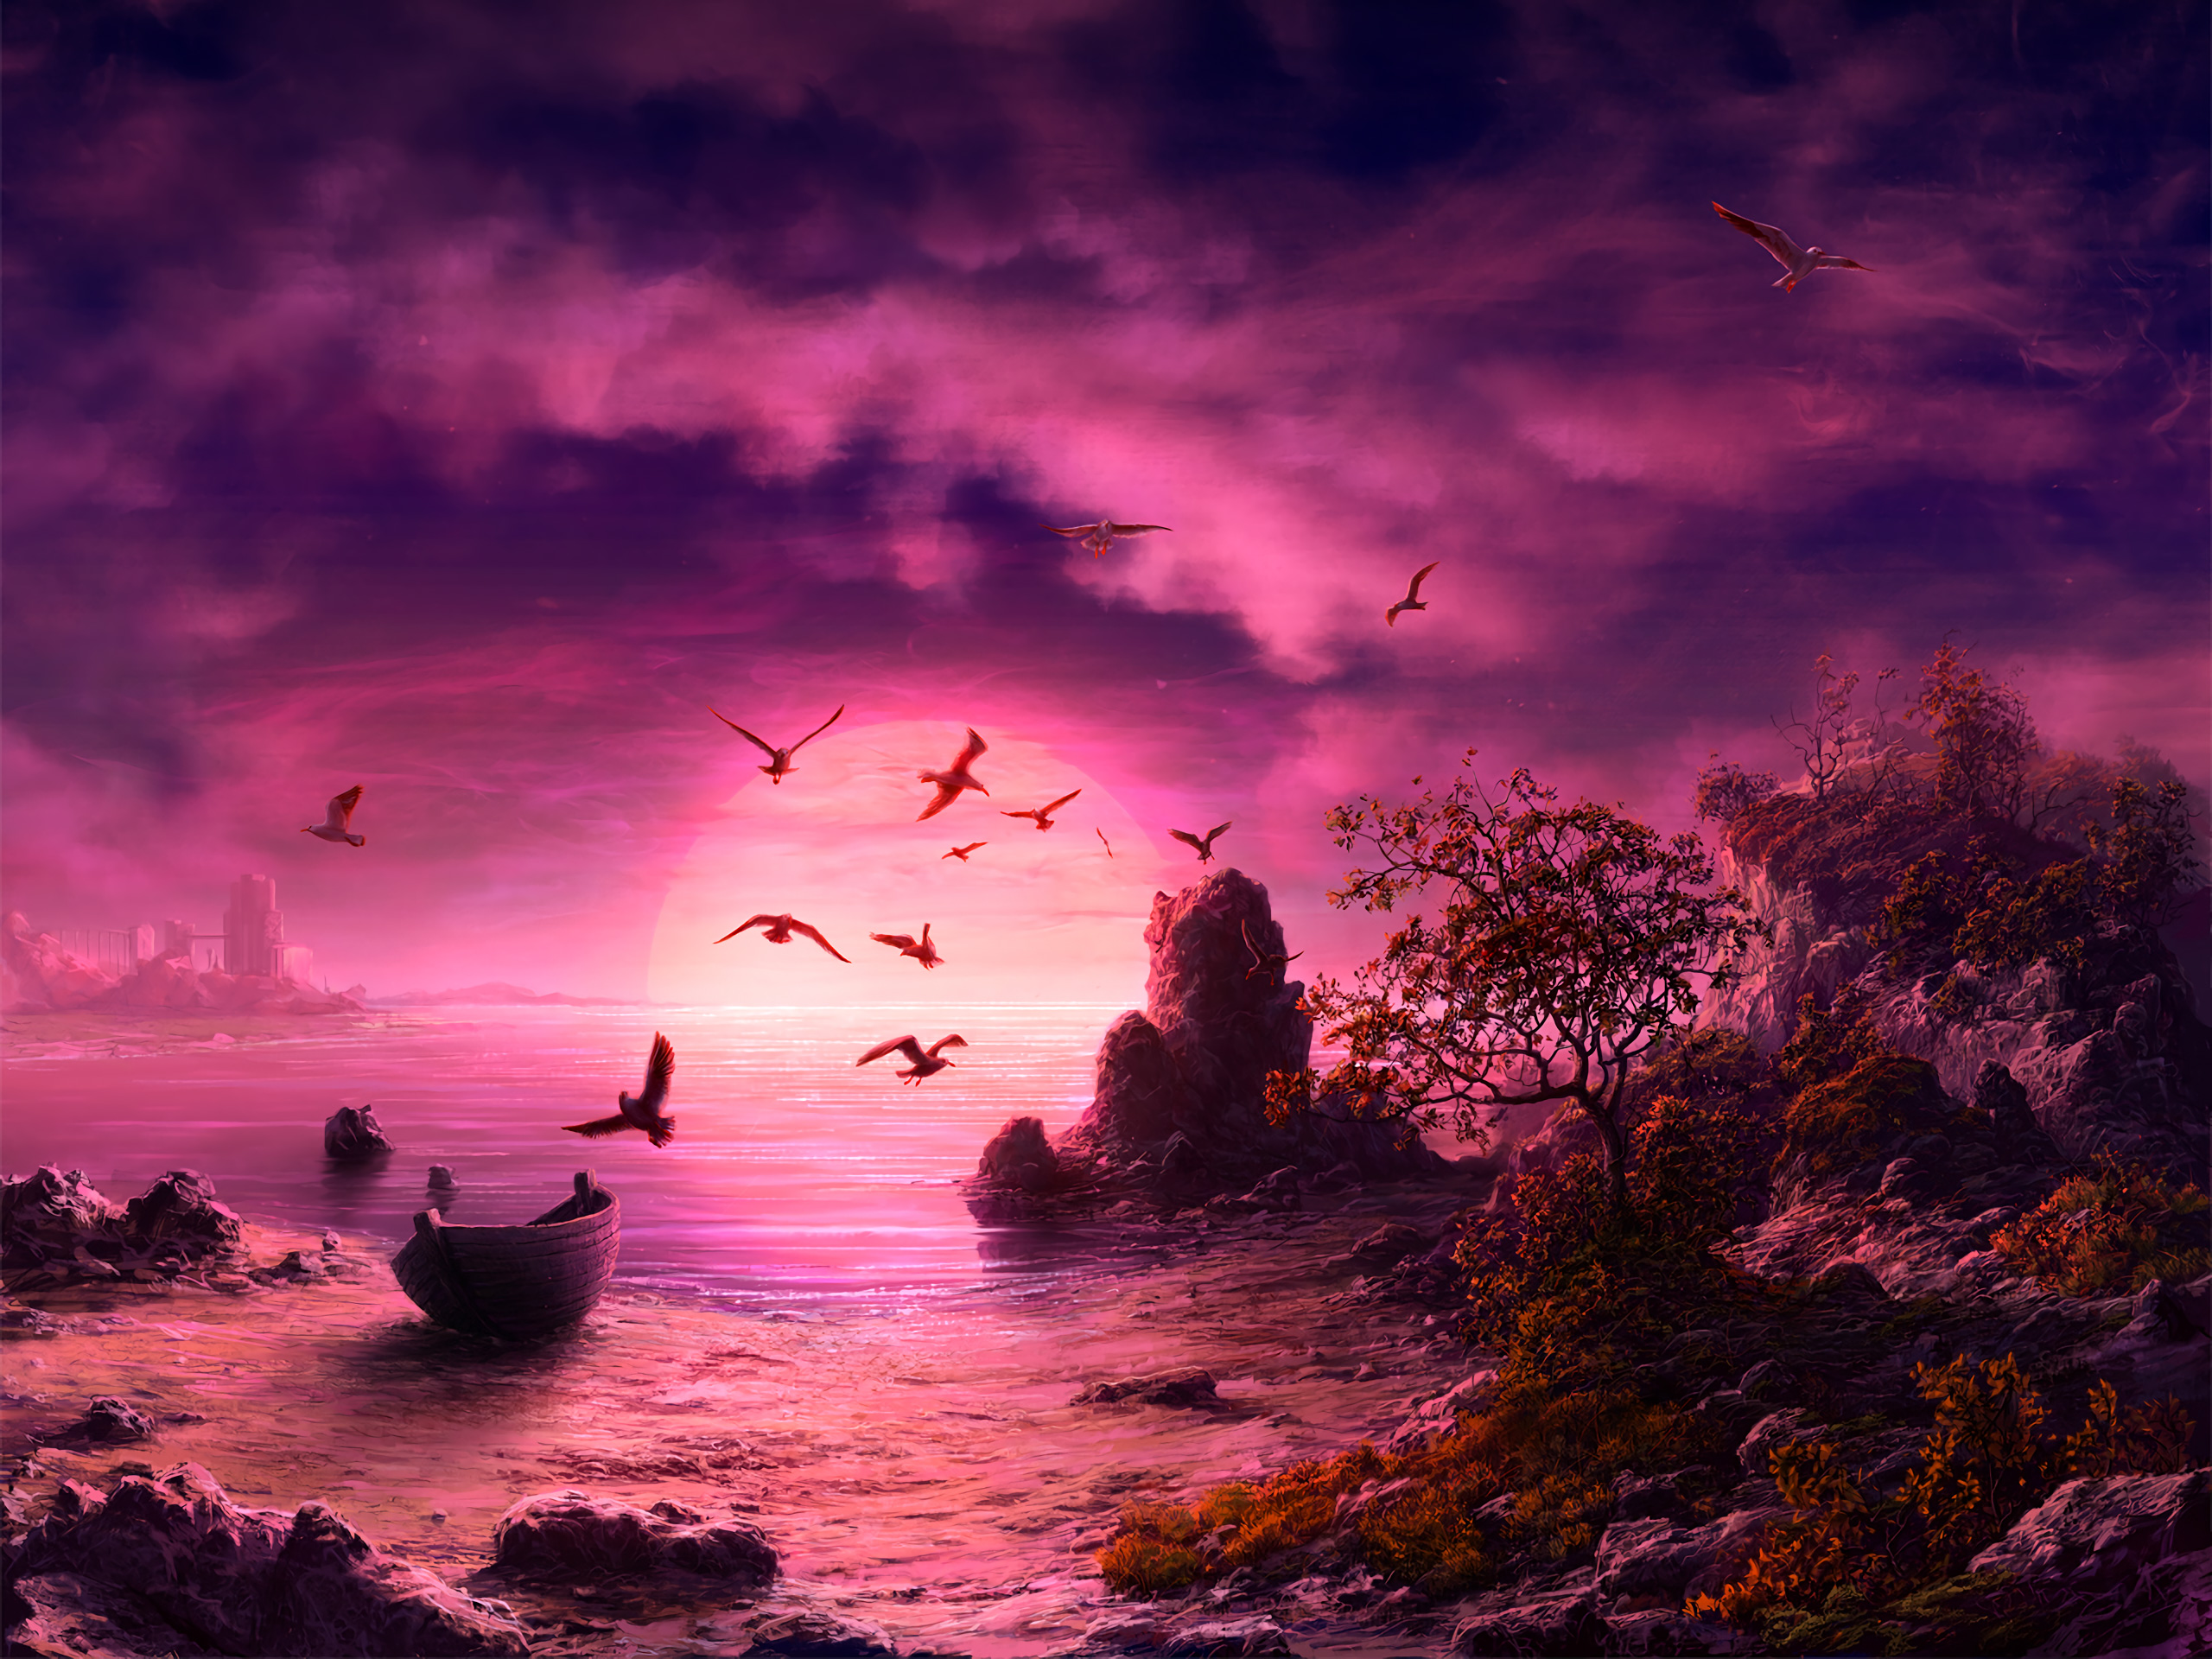 1400x900 Seagull Birds Boat Landscape Purple Sunset 1400x900 Resolution Hd 4k Wallpapers Images Backgrounds Photos And Pictures